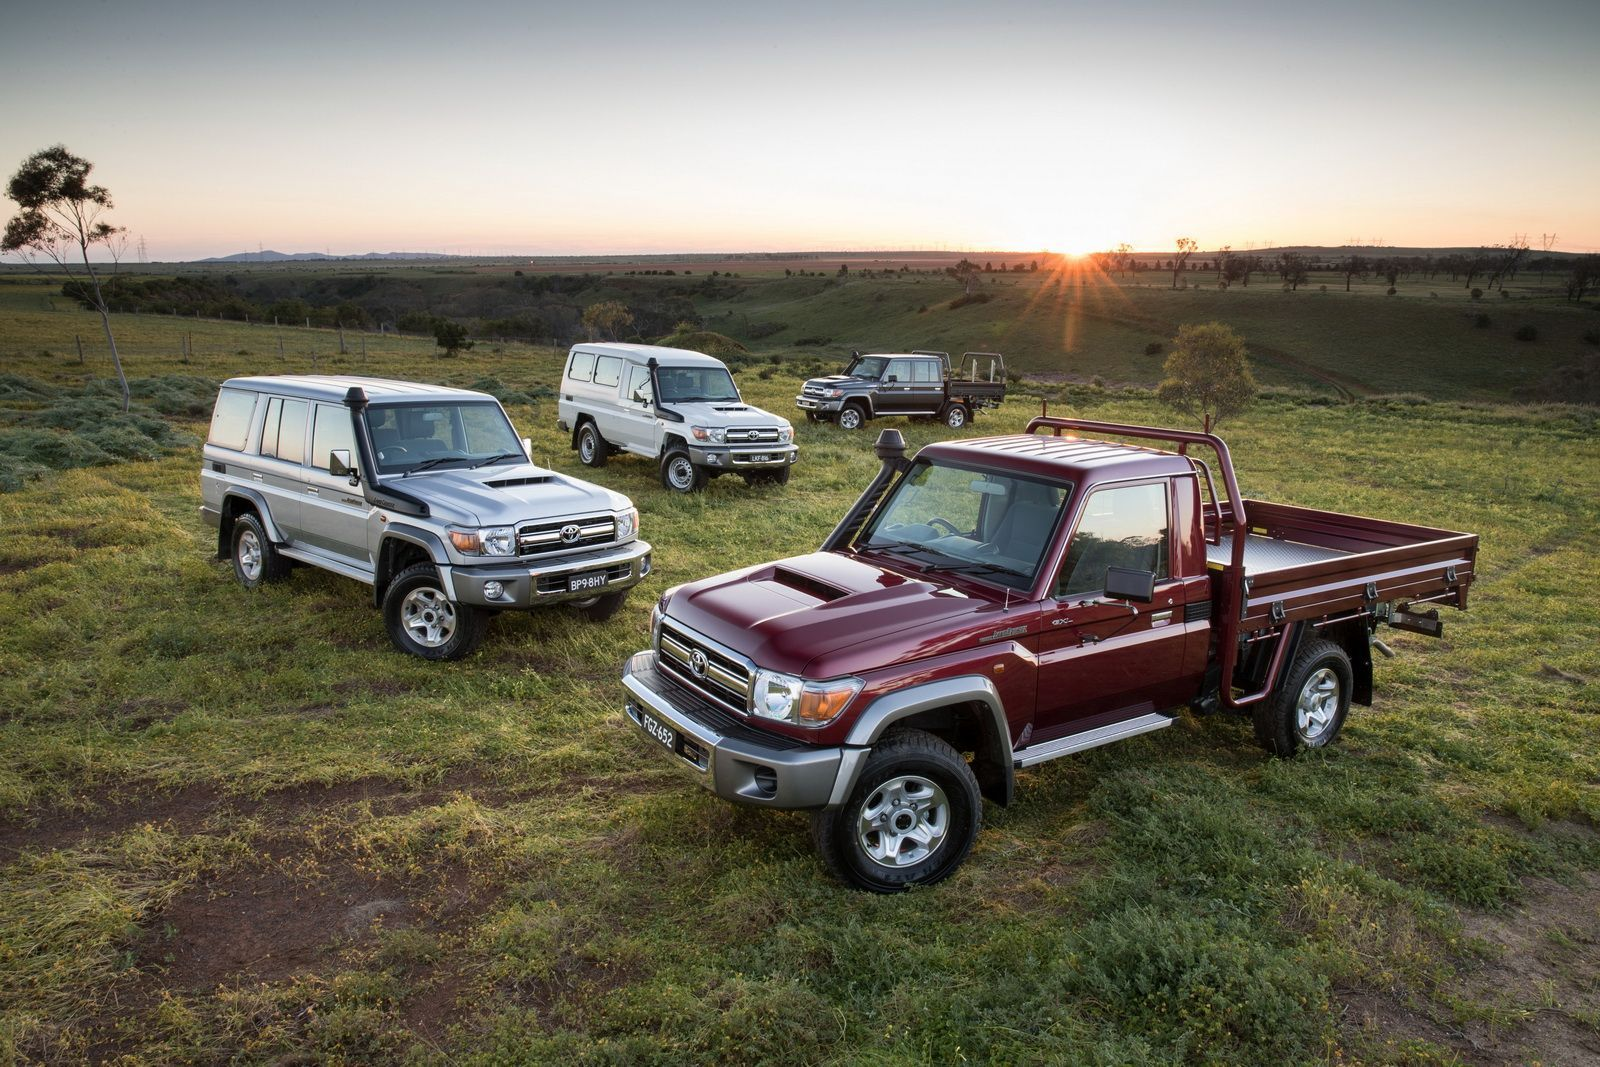 2016 Toyota LandCruiser 70 Series Range - Single Cab Chassis GXL (right), Wagon GXL (left), Troop Carrier GXL and Double Cab Chassis GXL (rear)